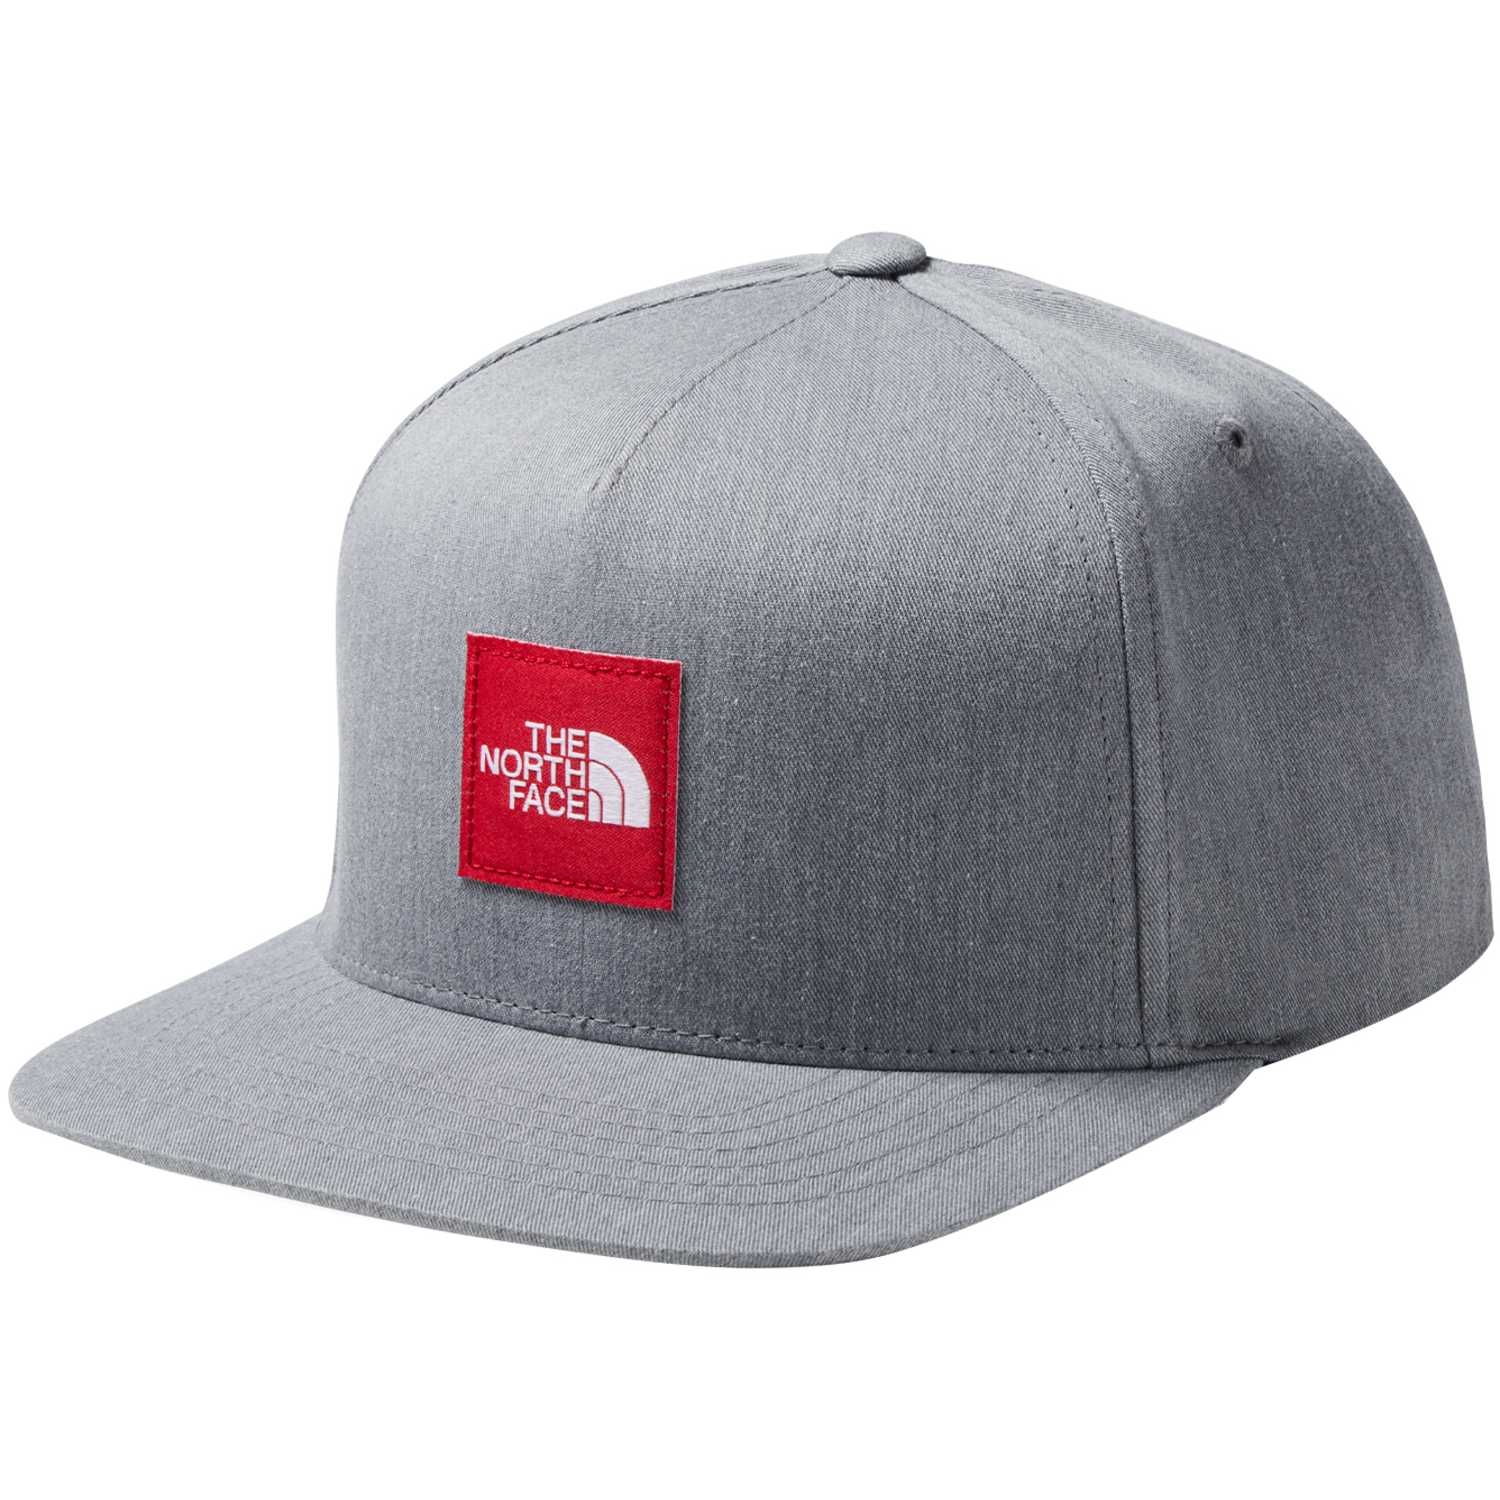 Gorros de Hombre The North Face Gris street ball cap